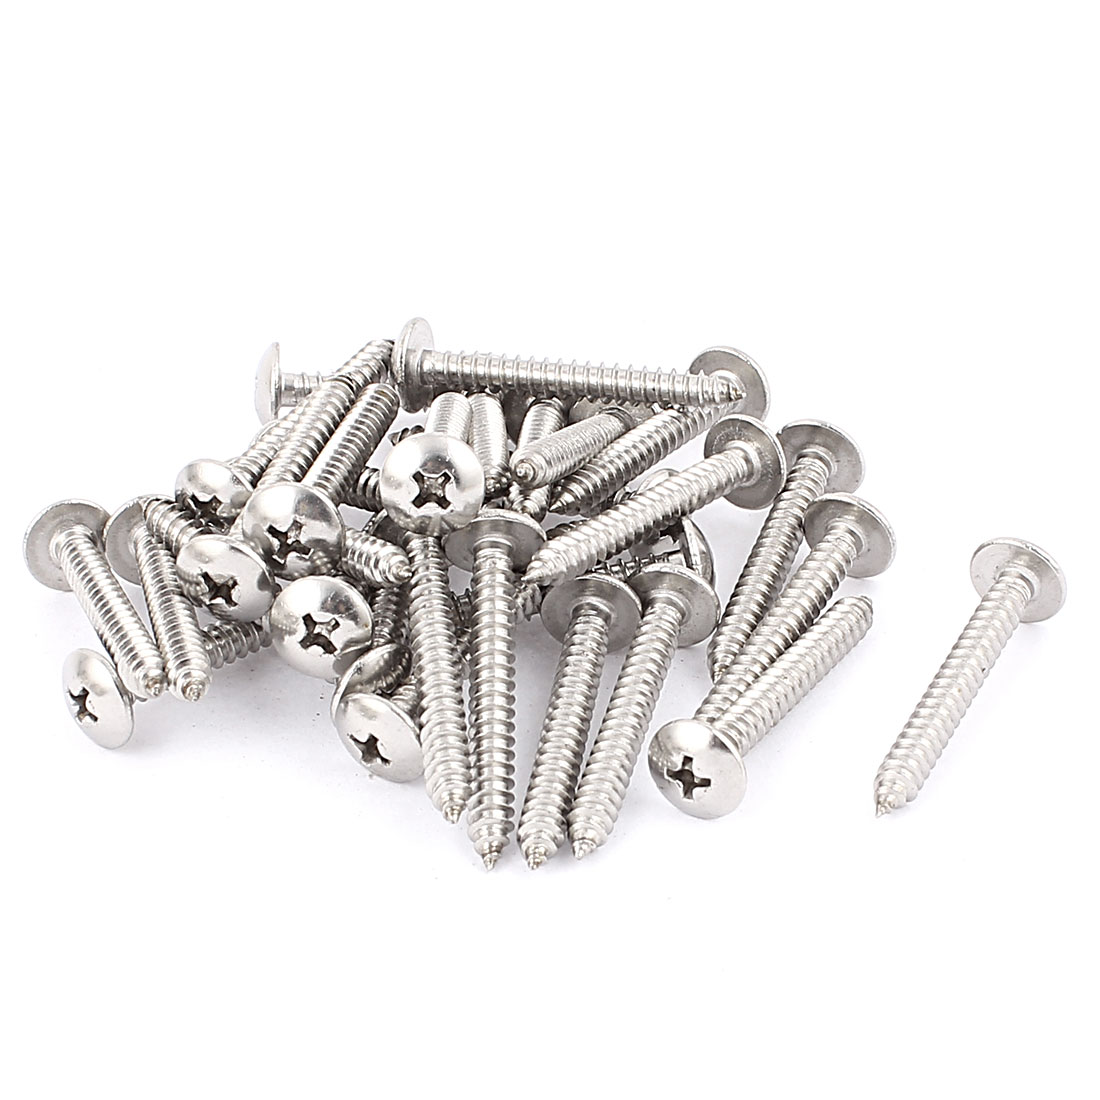 4.8mm x 40mm Stainless Steel Phillips Truss Head Self Tapping Screw 30 Pcs